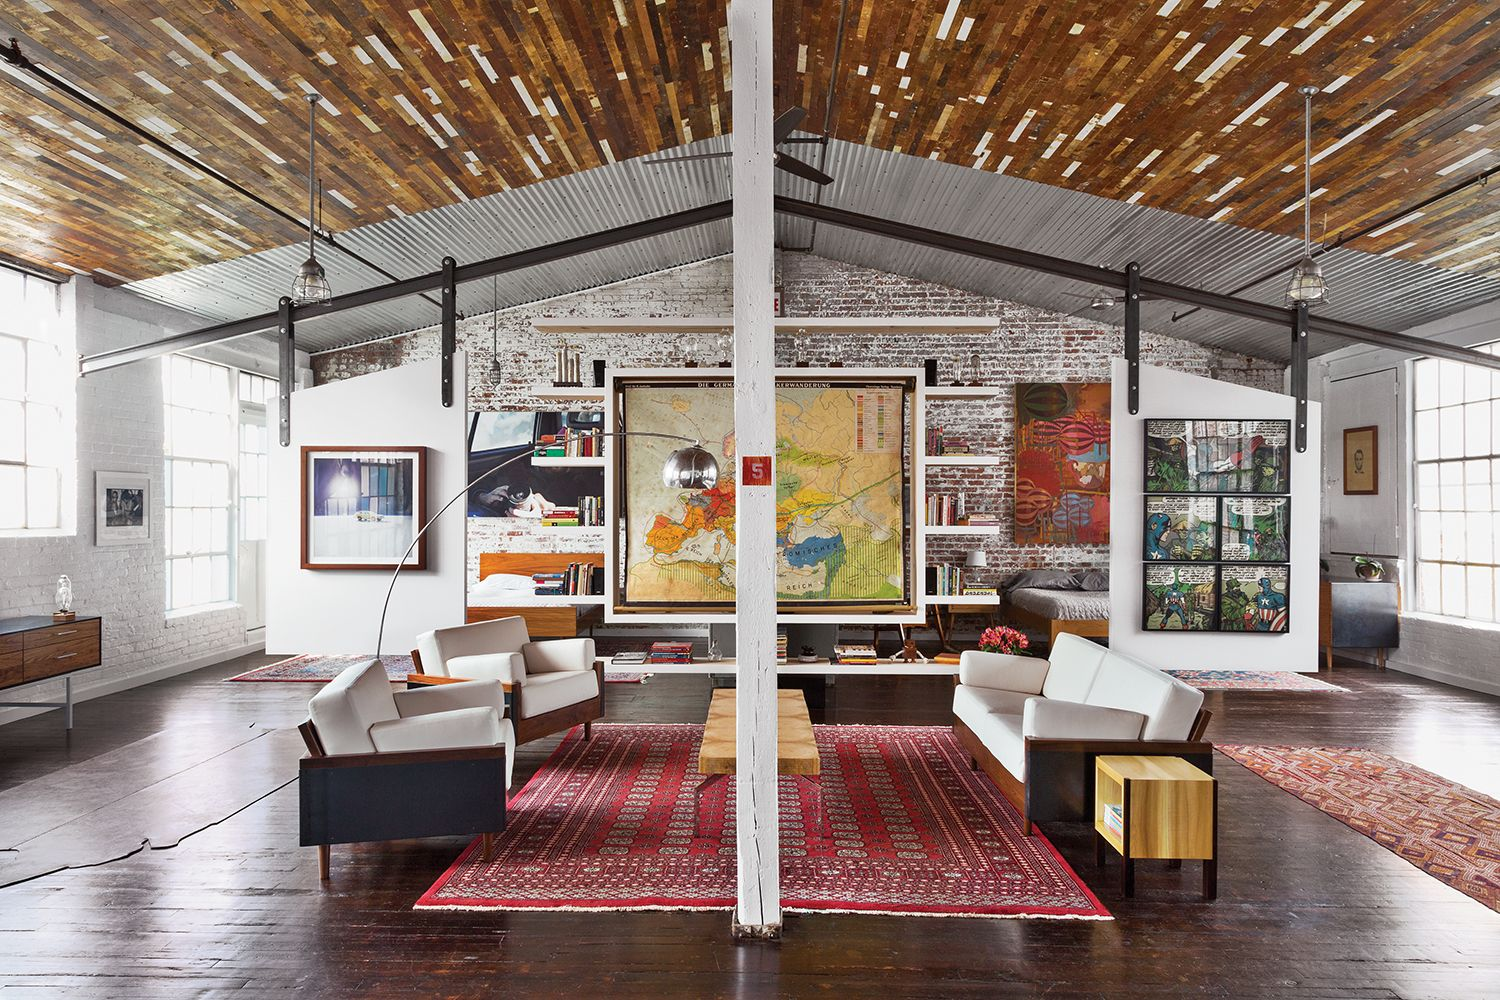 design duo takes over whole factory photo of beneath recycled wood ceiling and centered by bokhara rug the living area contains furniture also petra mullerova mullerovapetra on pinterest rh